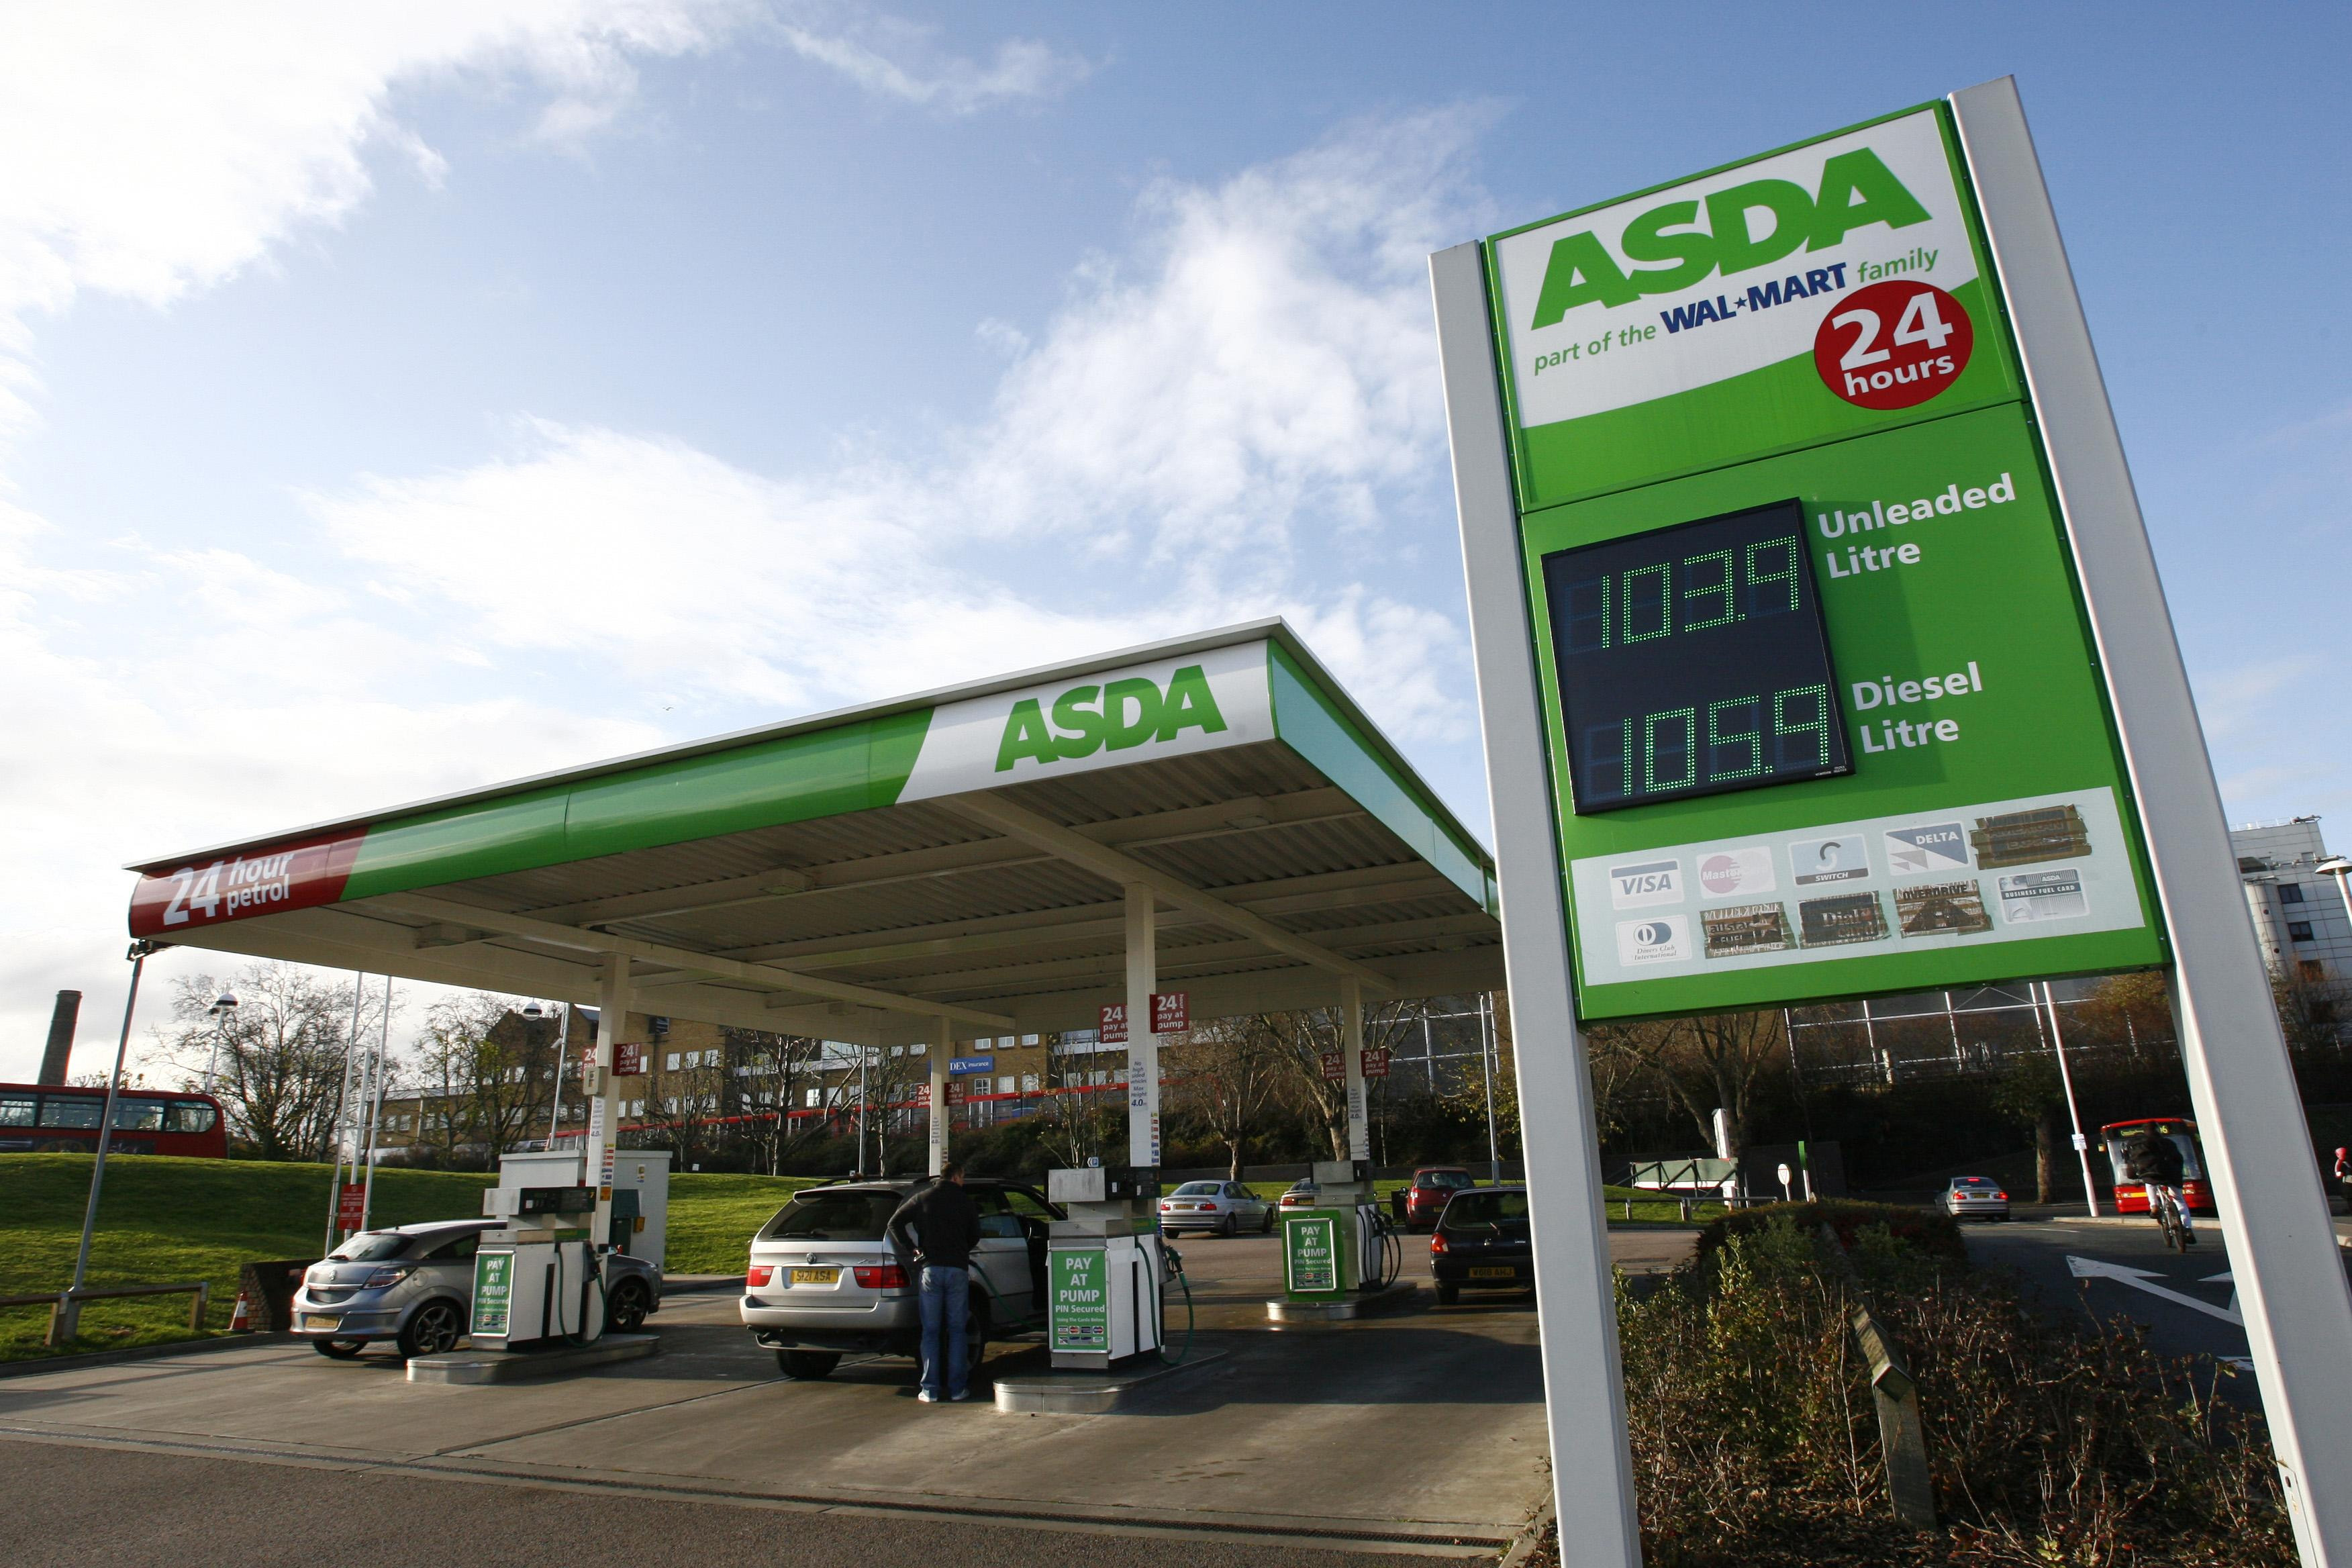 Woman 'charged' £99 deposit at Asda petrol station before filling up